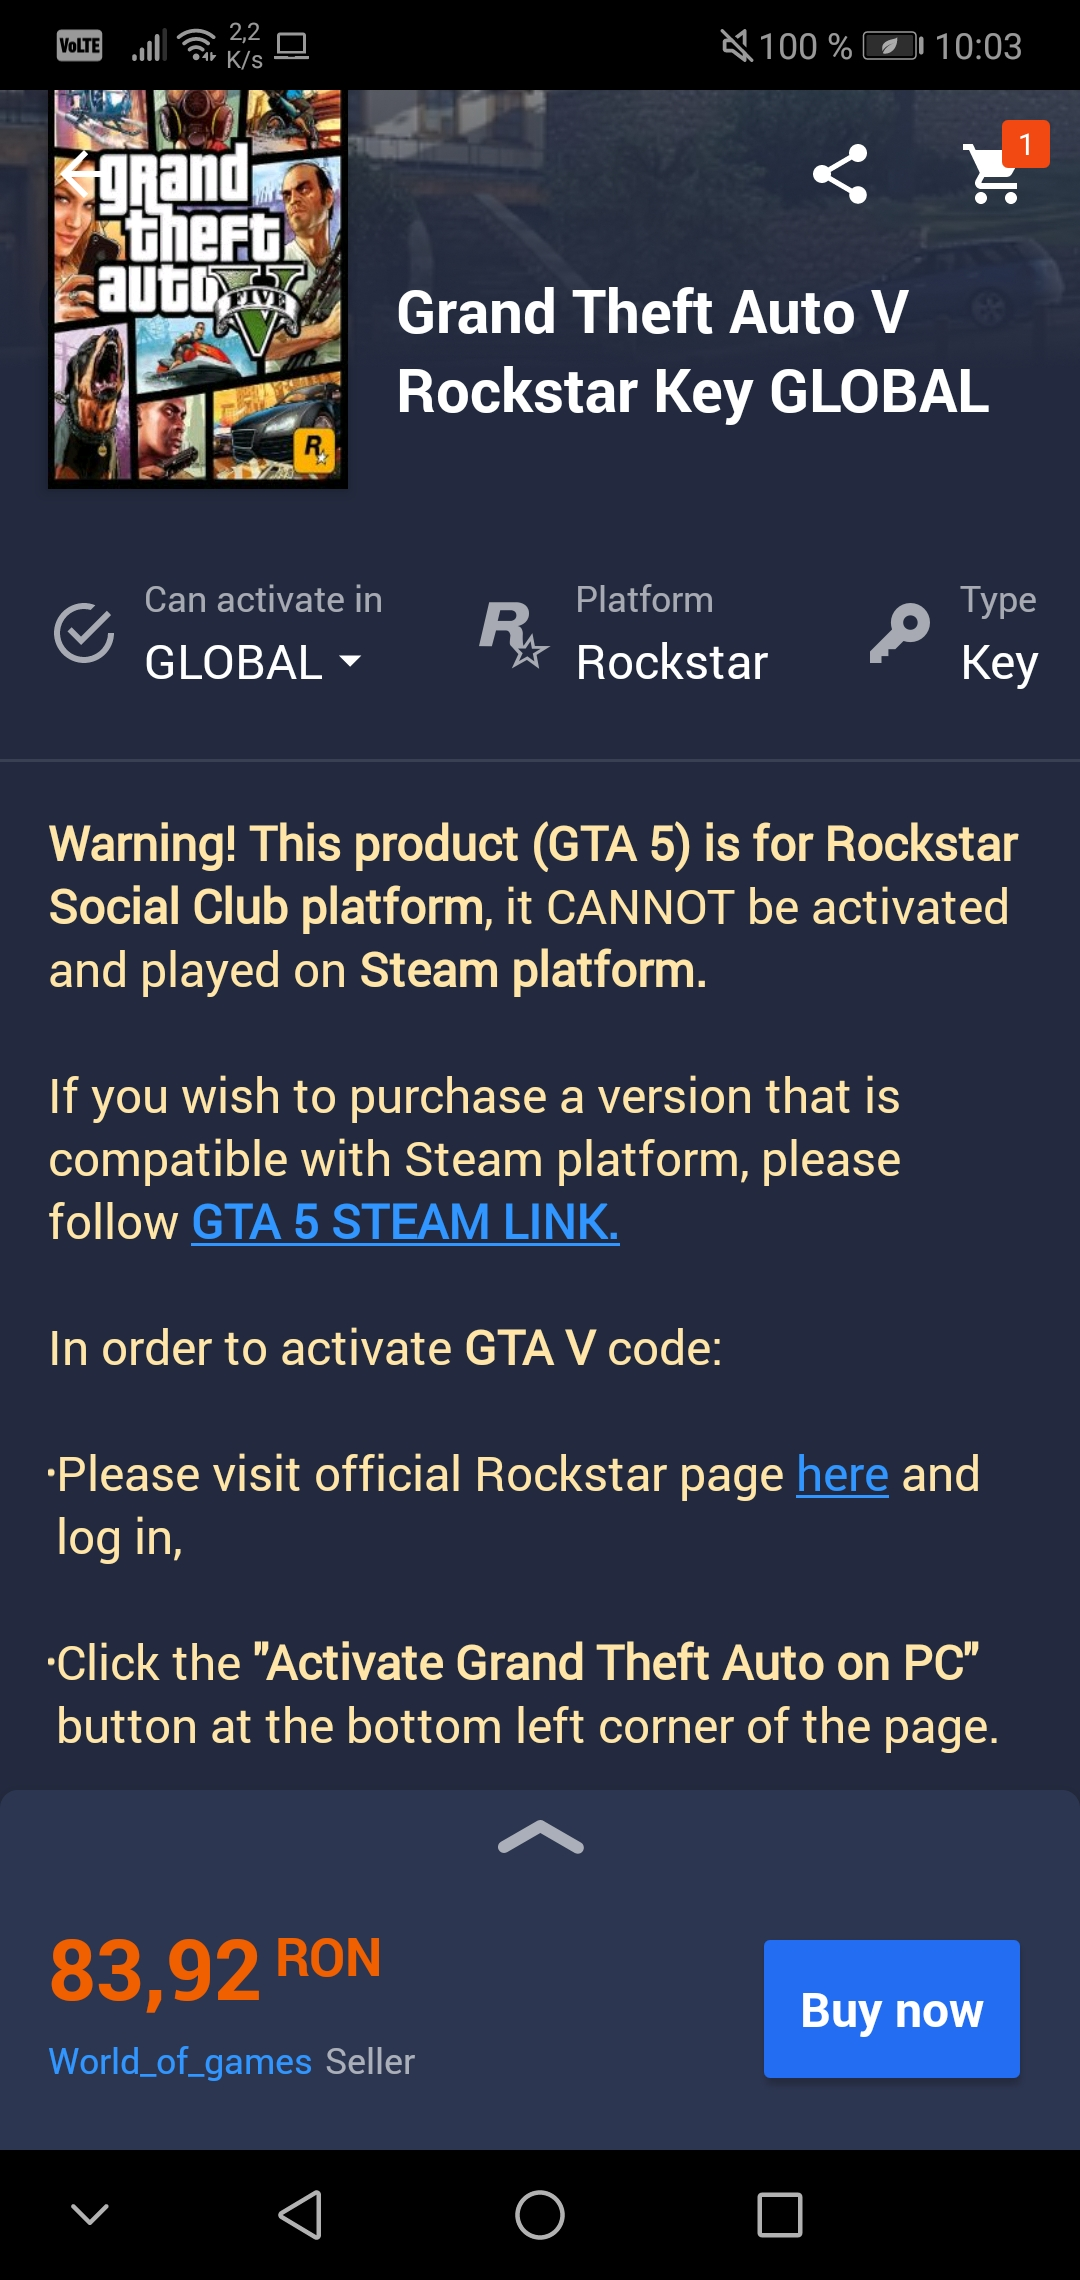 Can i play FiveM without have Gta 5 on steam? - FiveM